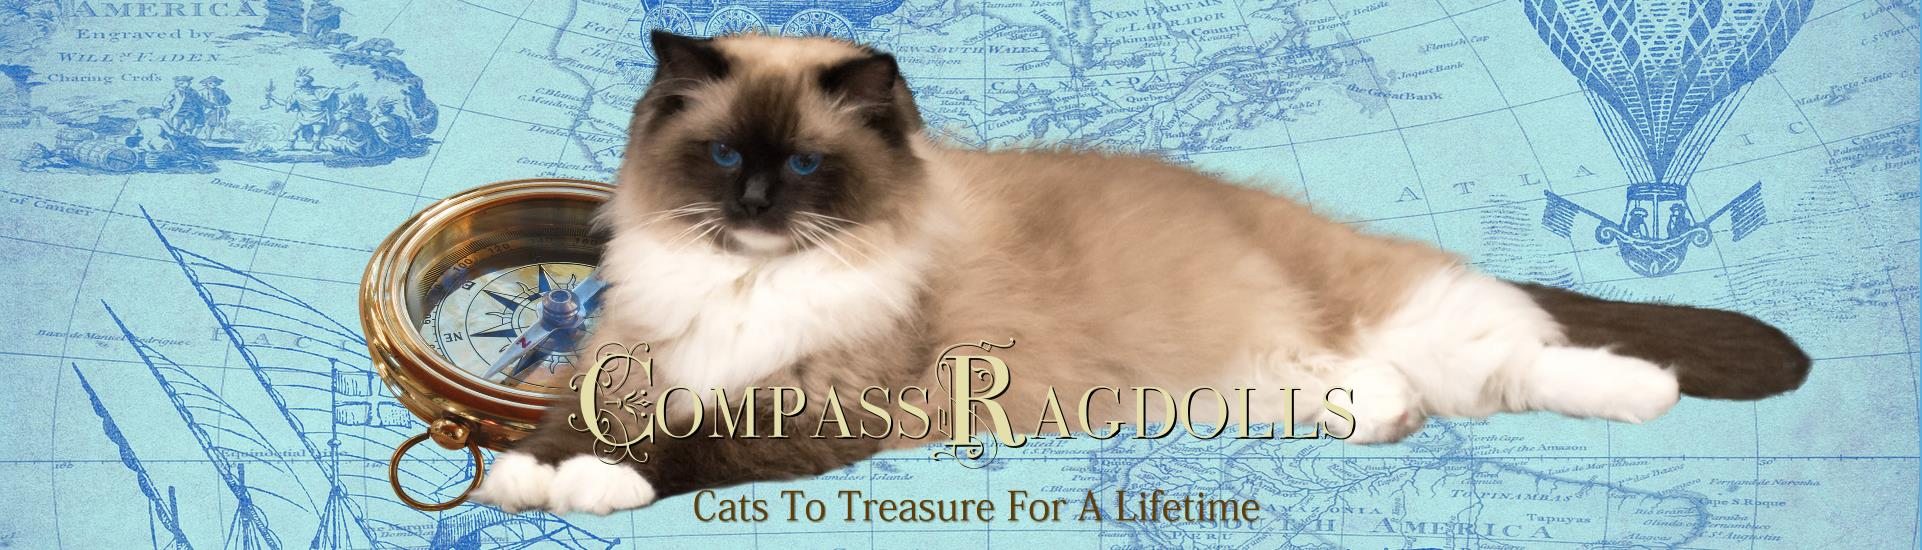 Available Ragdoll Kittens for Sale FL | Compass Ragdolls